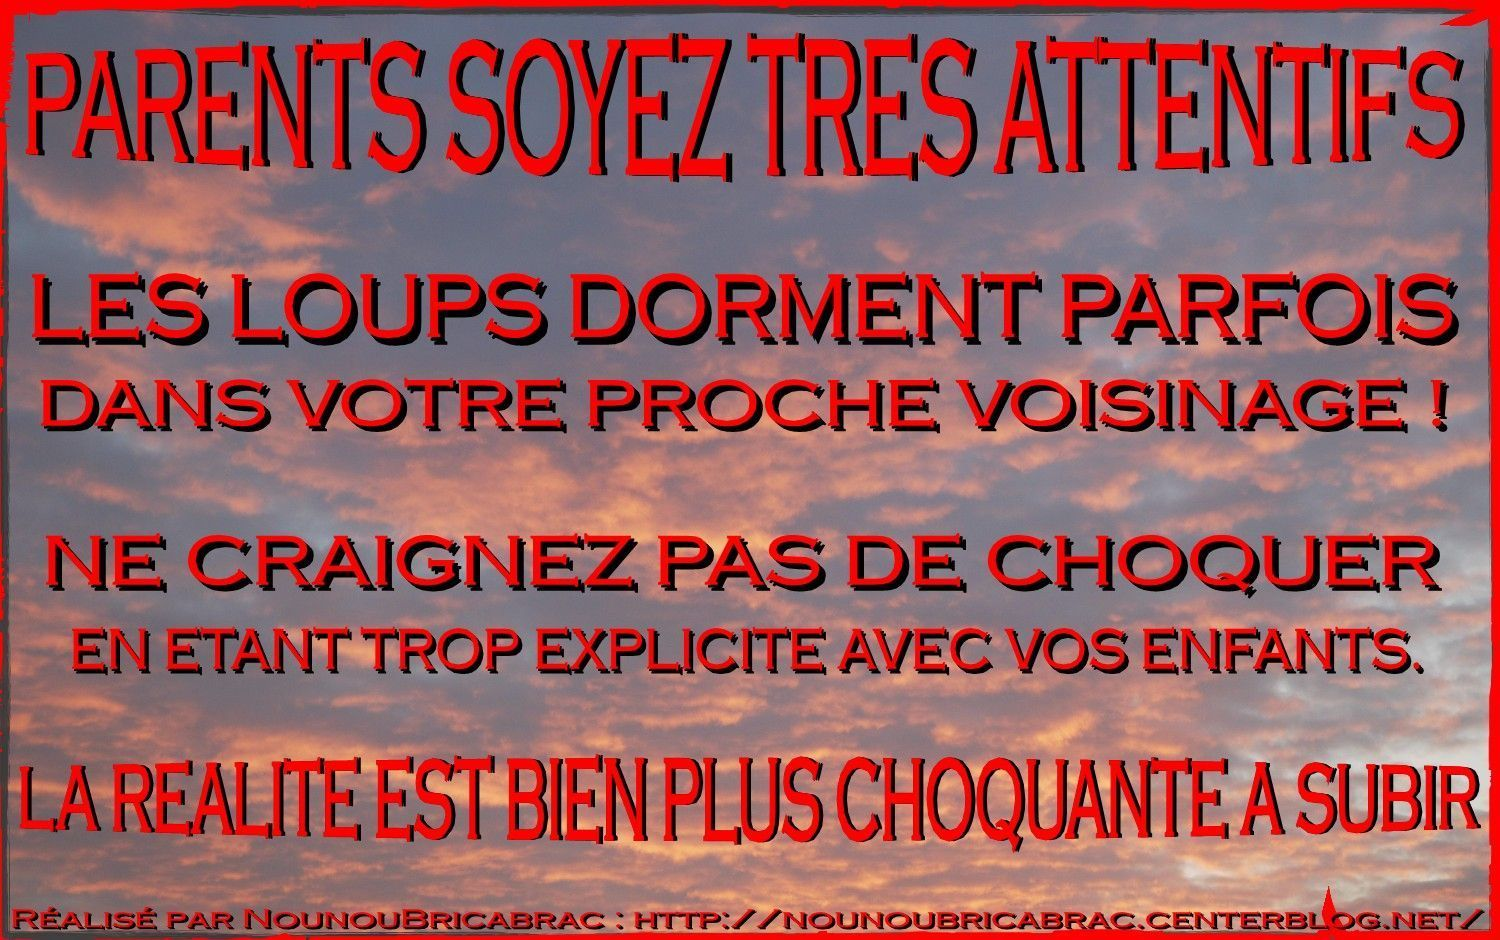 PARENTS SOYEZ TRES ATTENTIFS... Histoire Vraie, c'est Votre Tmoignage !!!